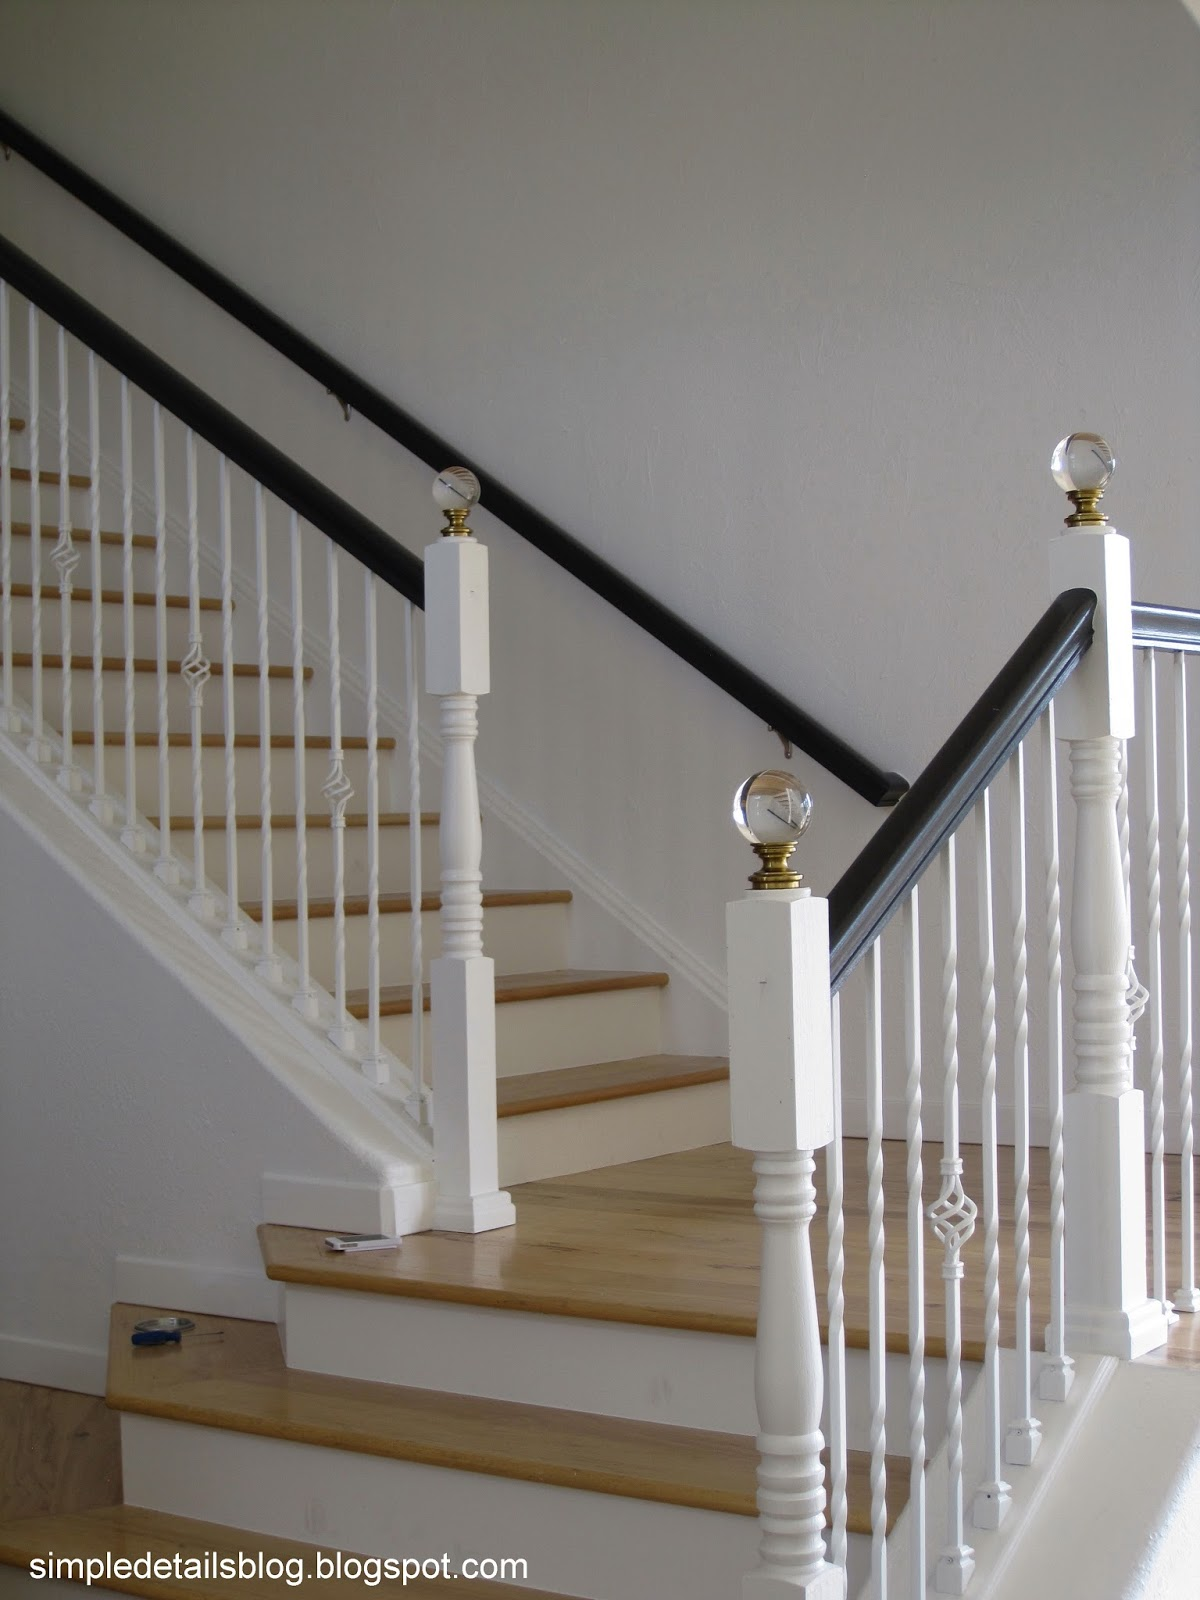 Simple Details: Diy Staircase Finials.